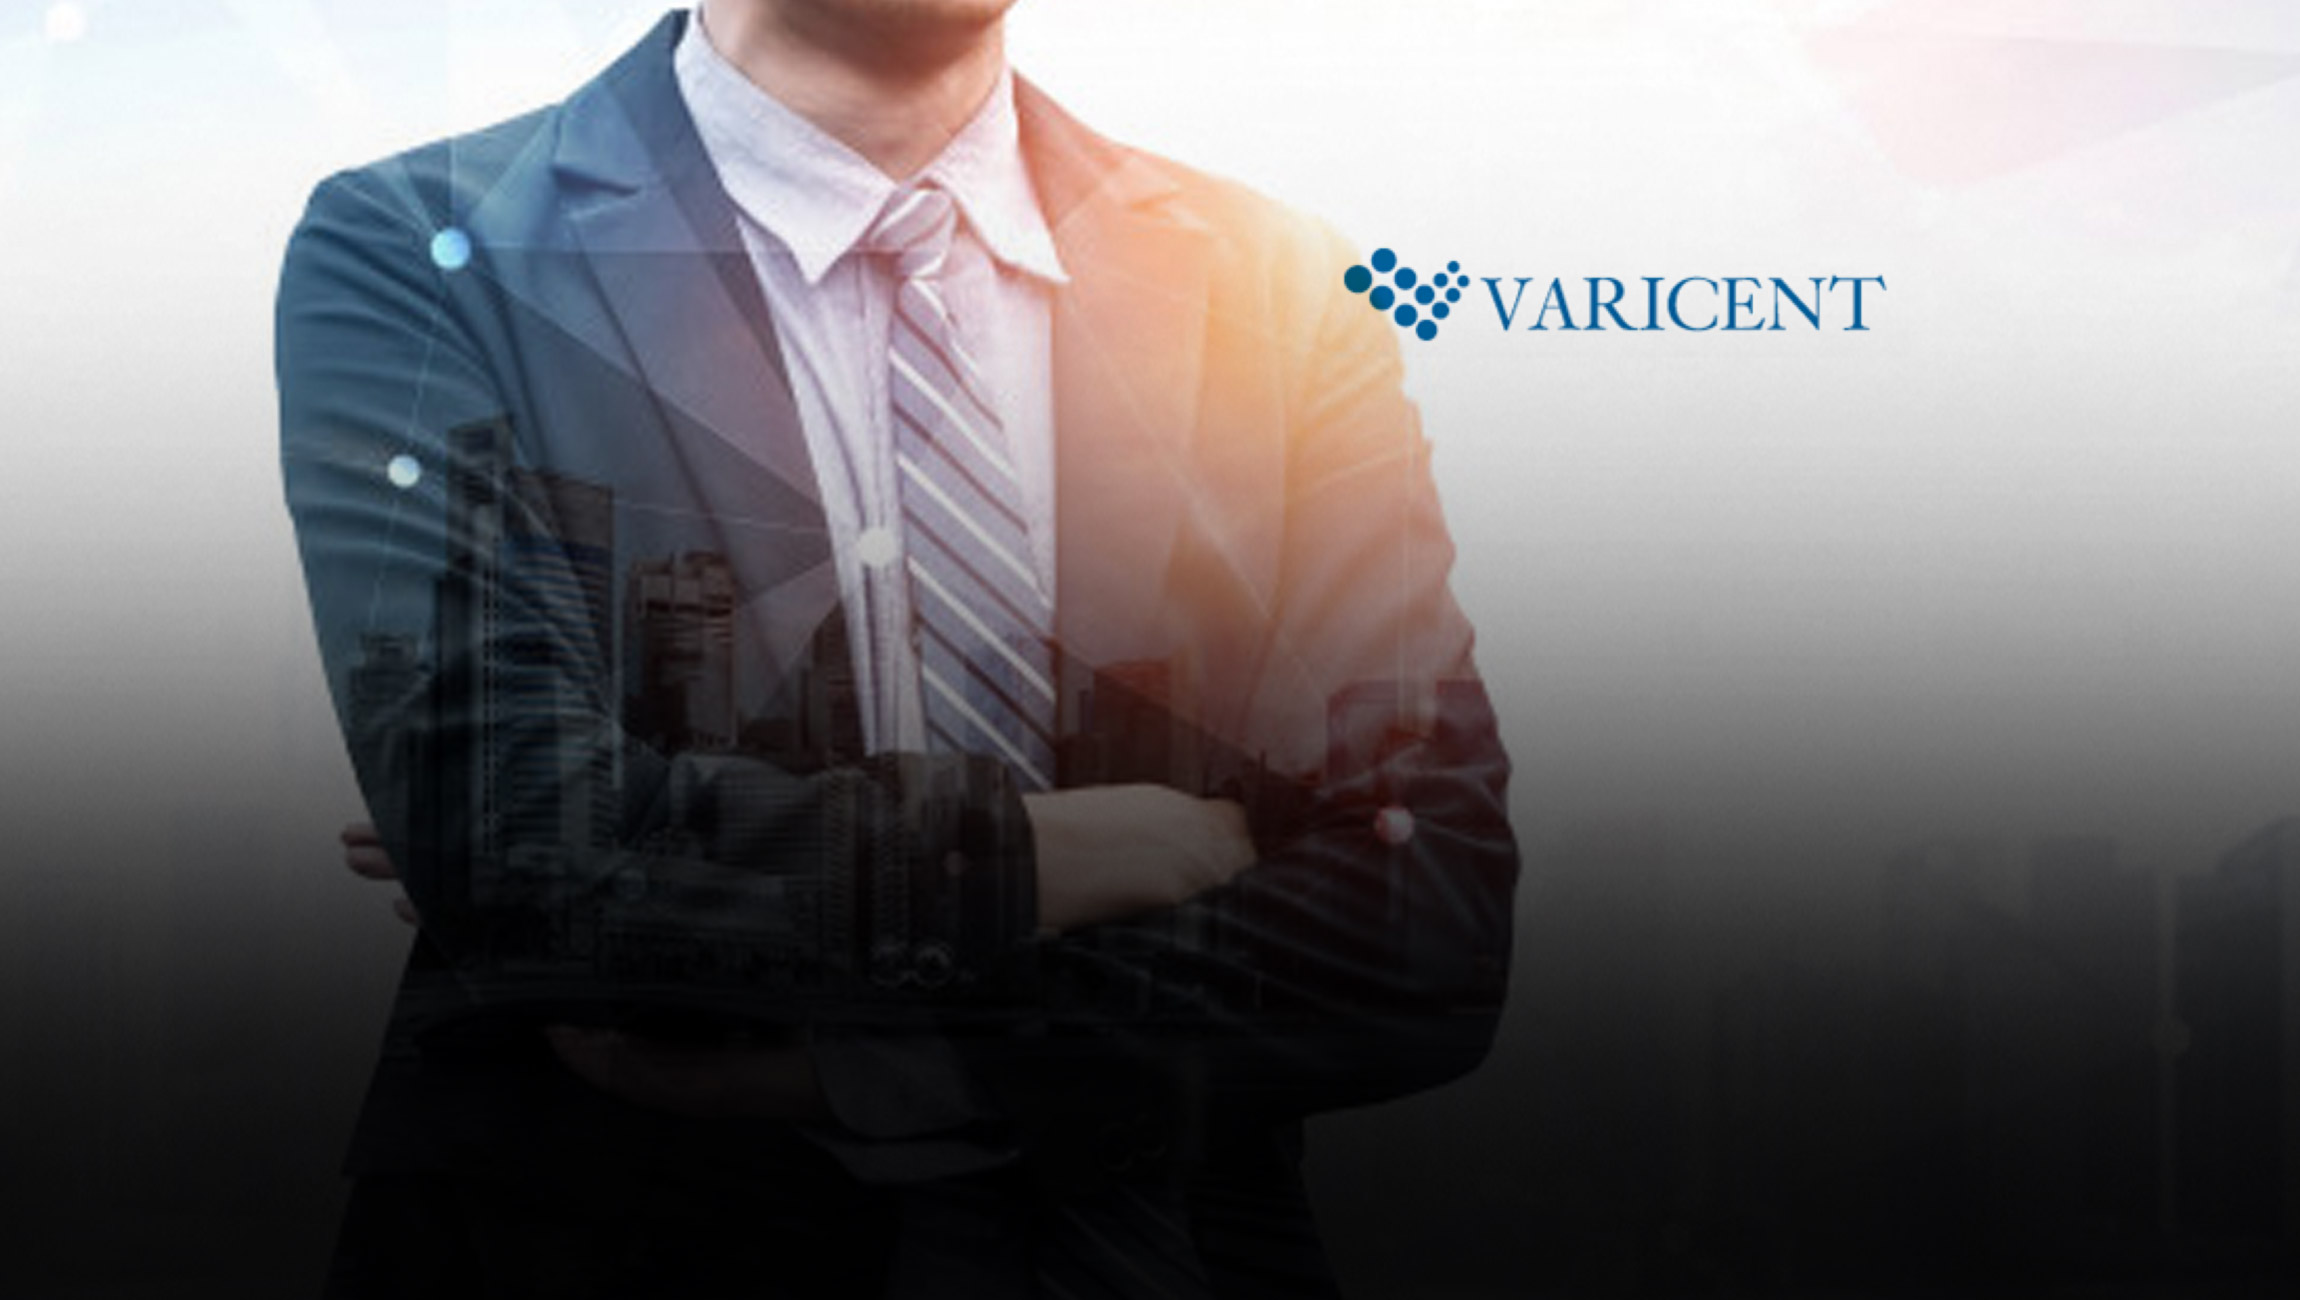 Varicent Appoints Alison Elworthy to Board of Directors